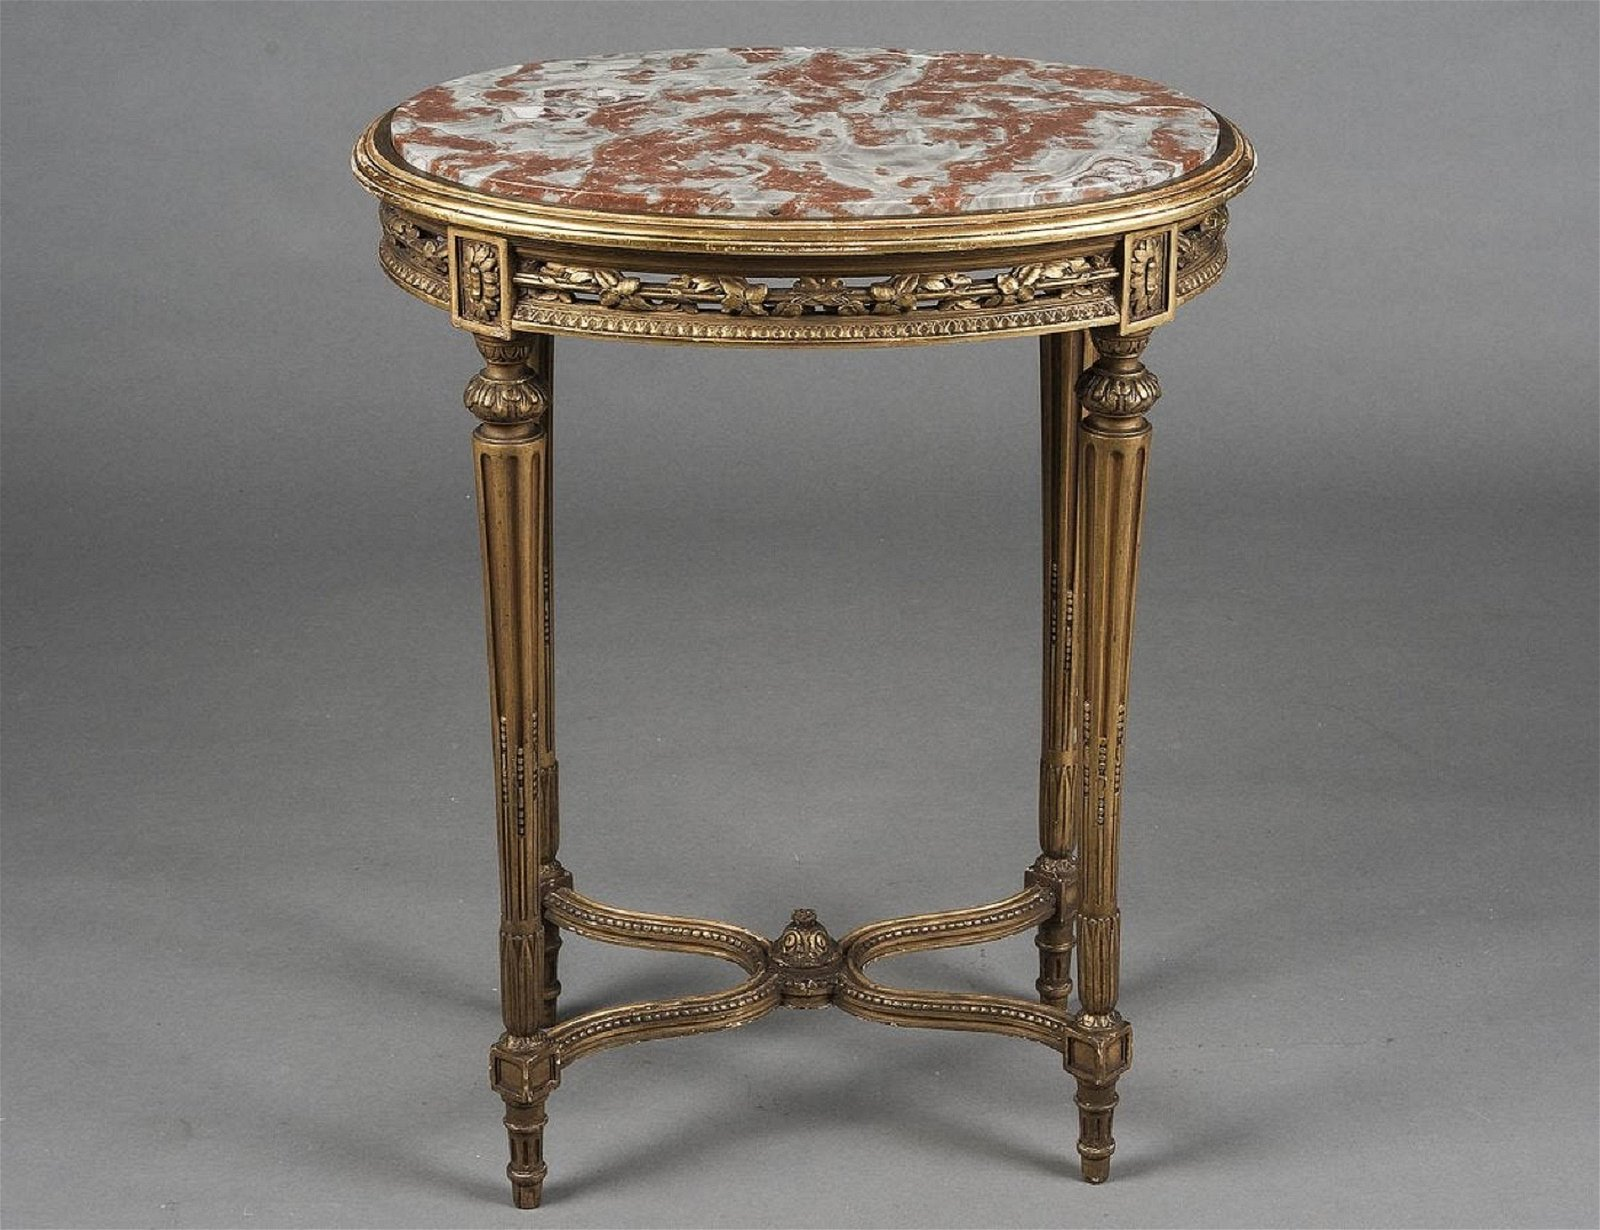 LOUIS XV STYLE CARVED AND GILTWOOD SIDE TABLE